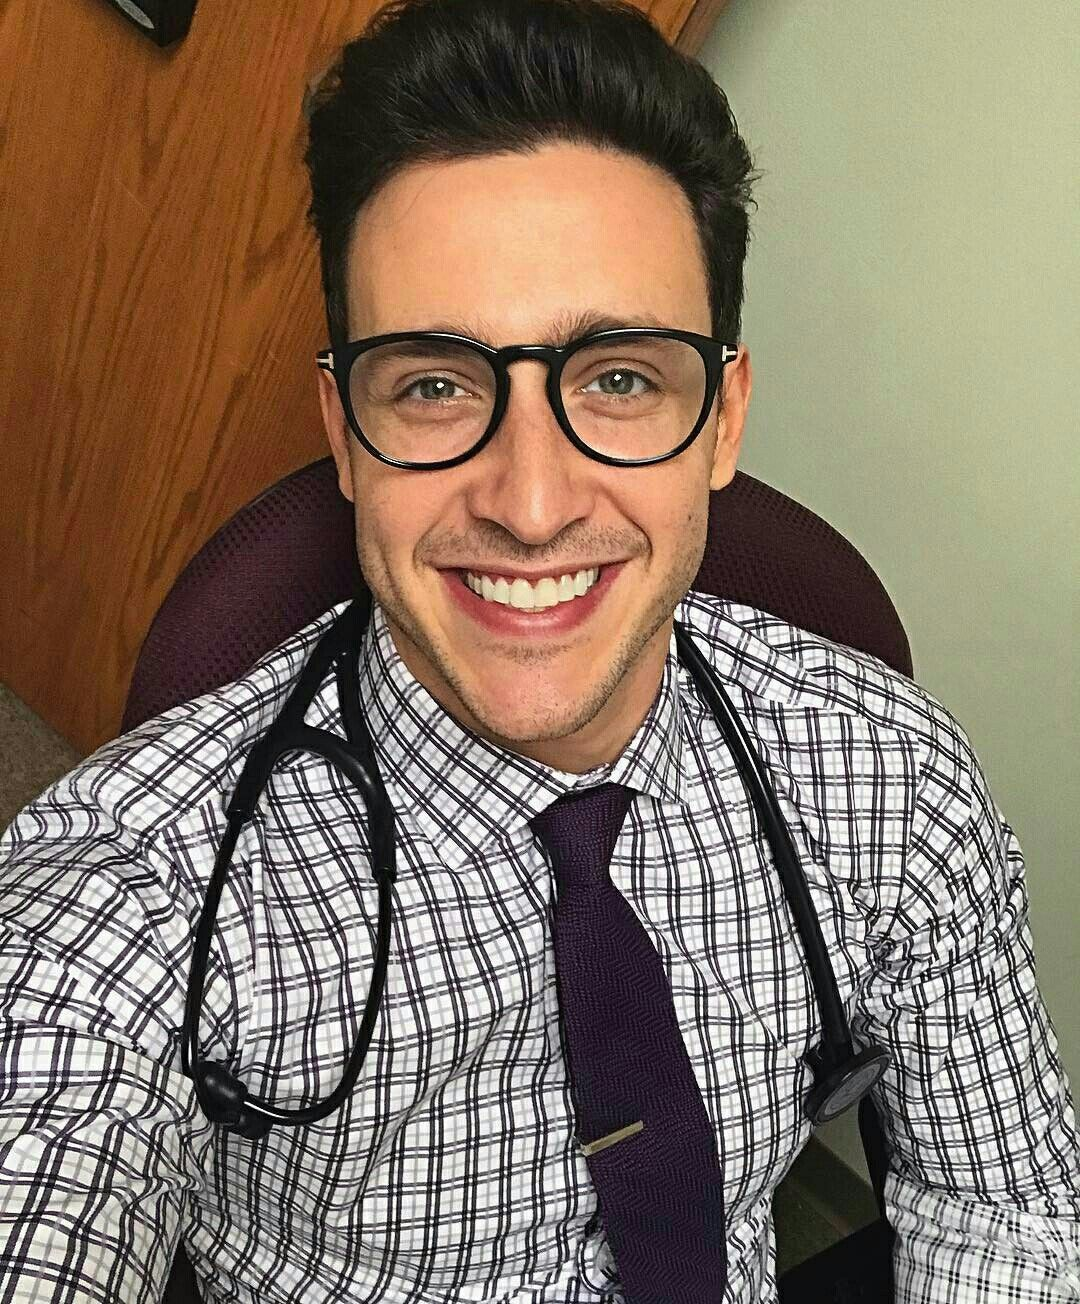 Cute Guy And His Doc